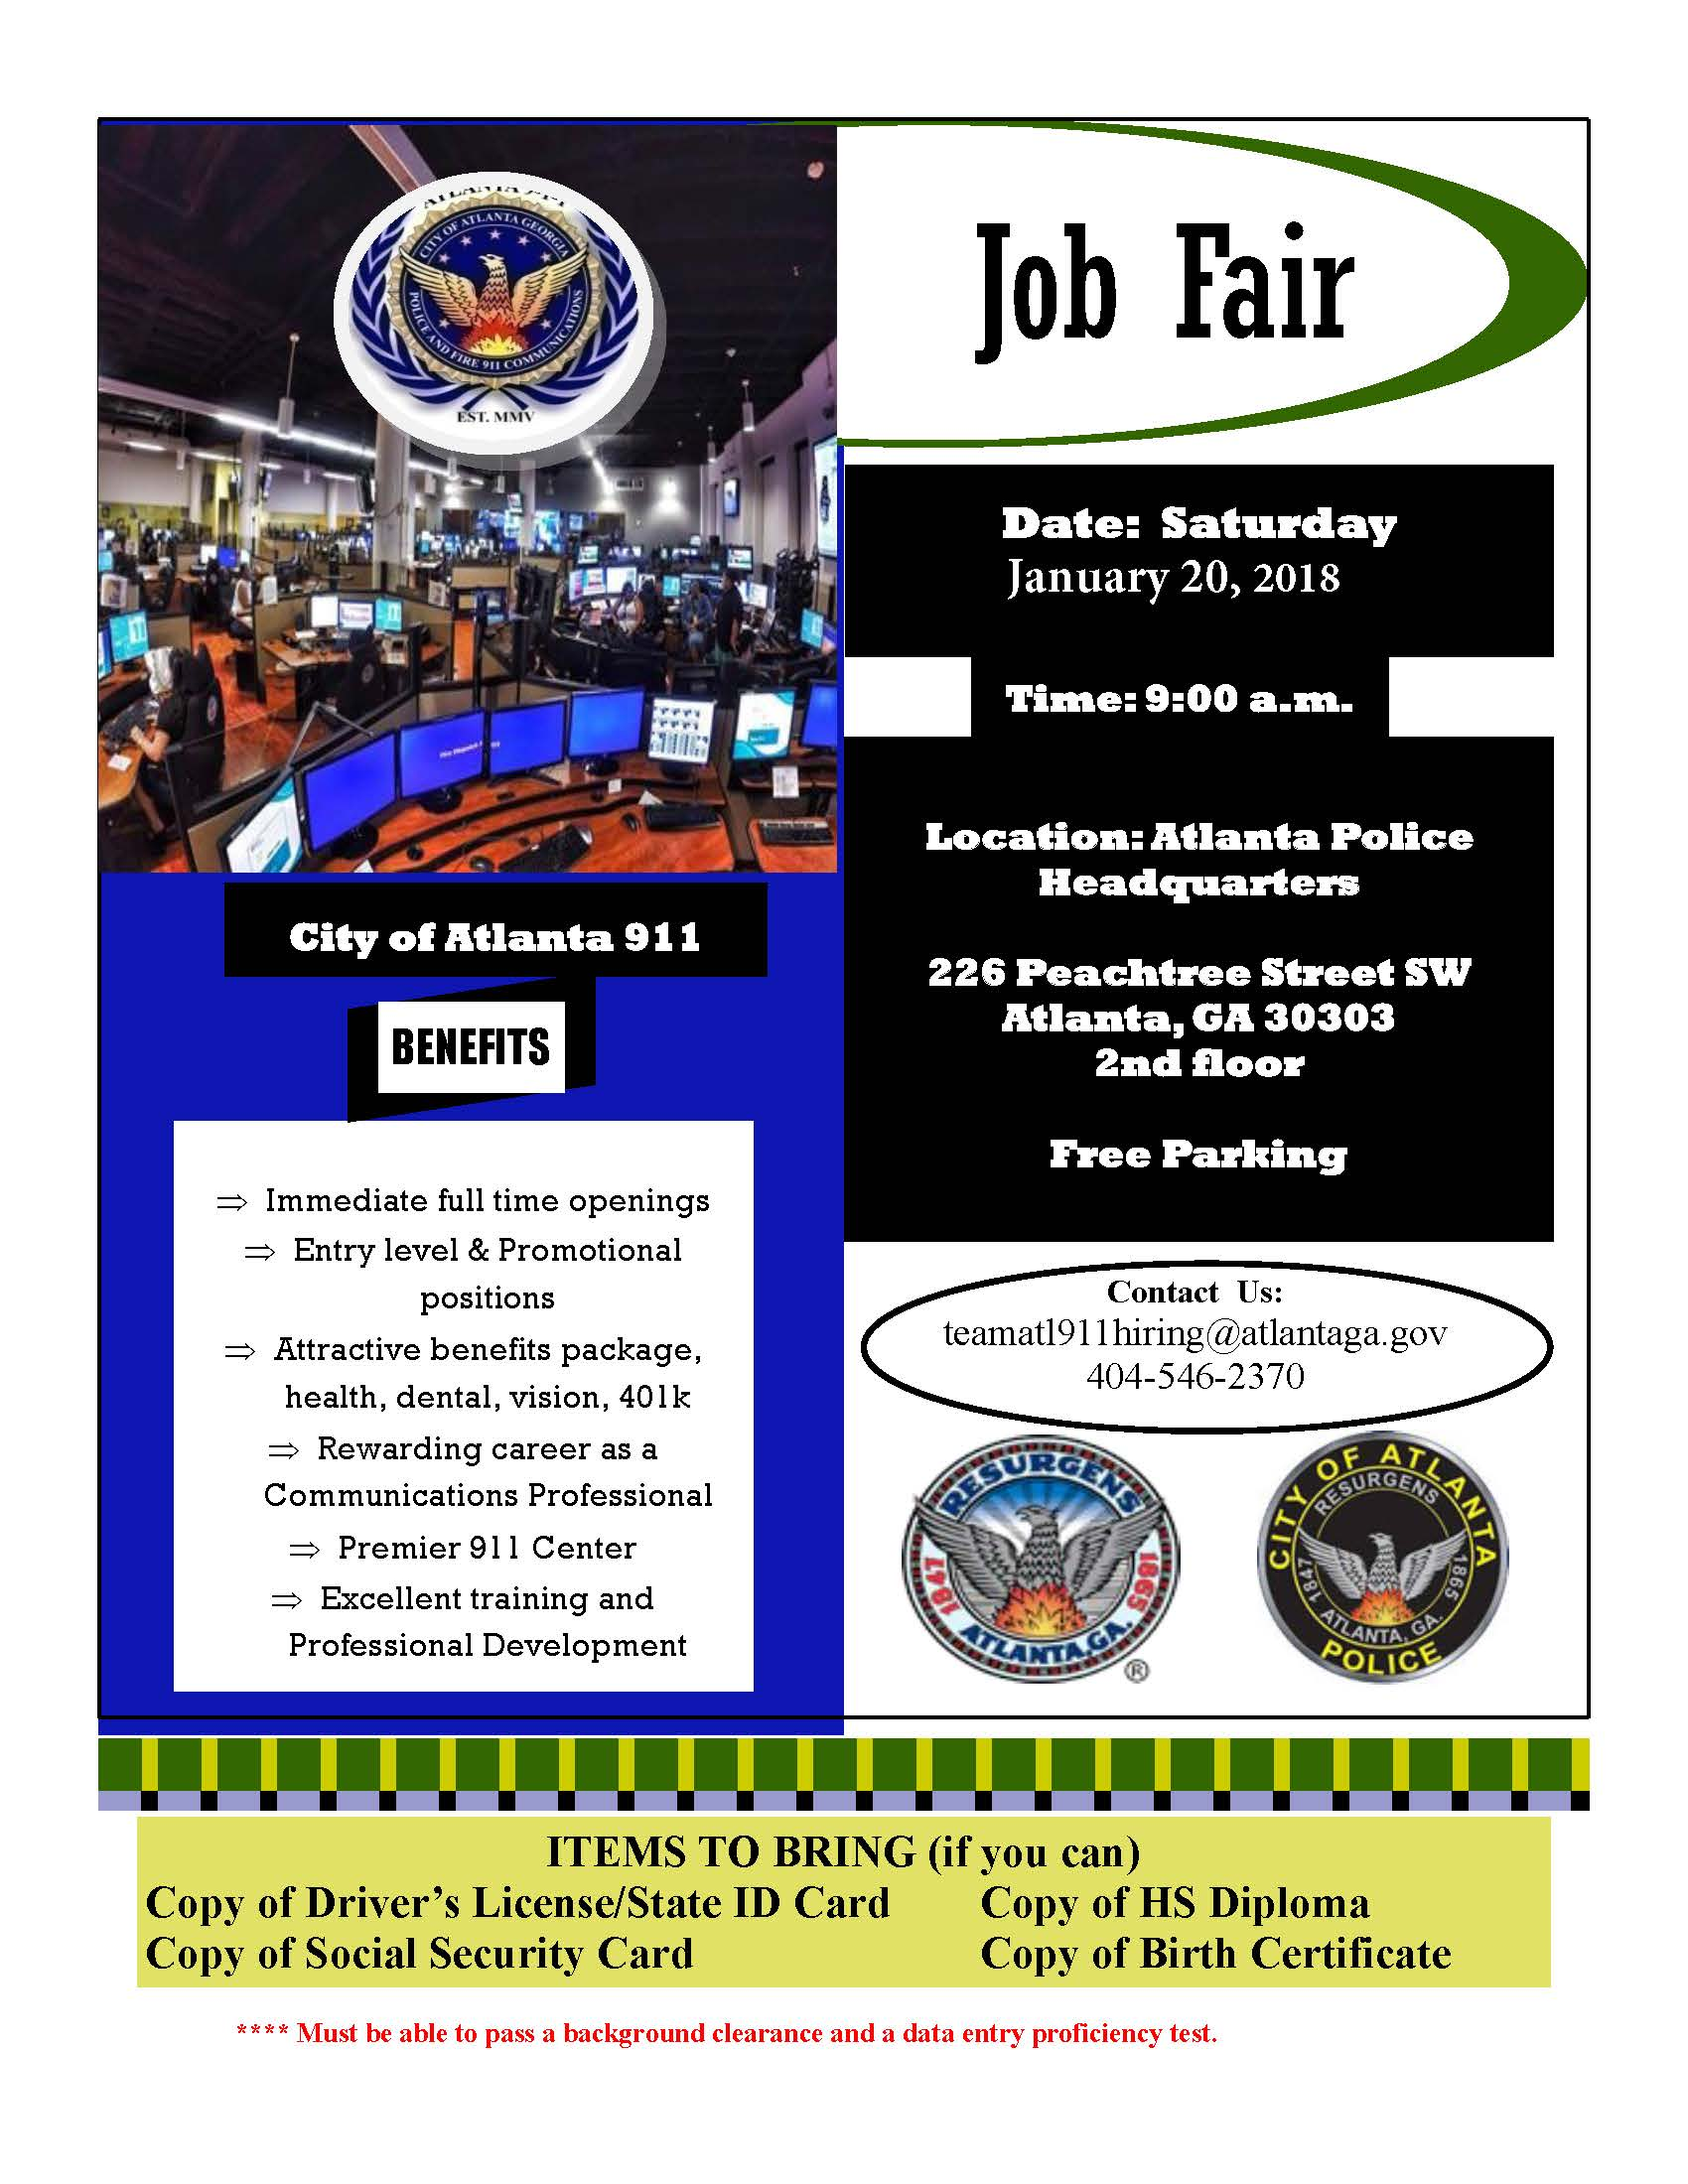 Job Fair flyer 1 20 18